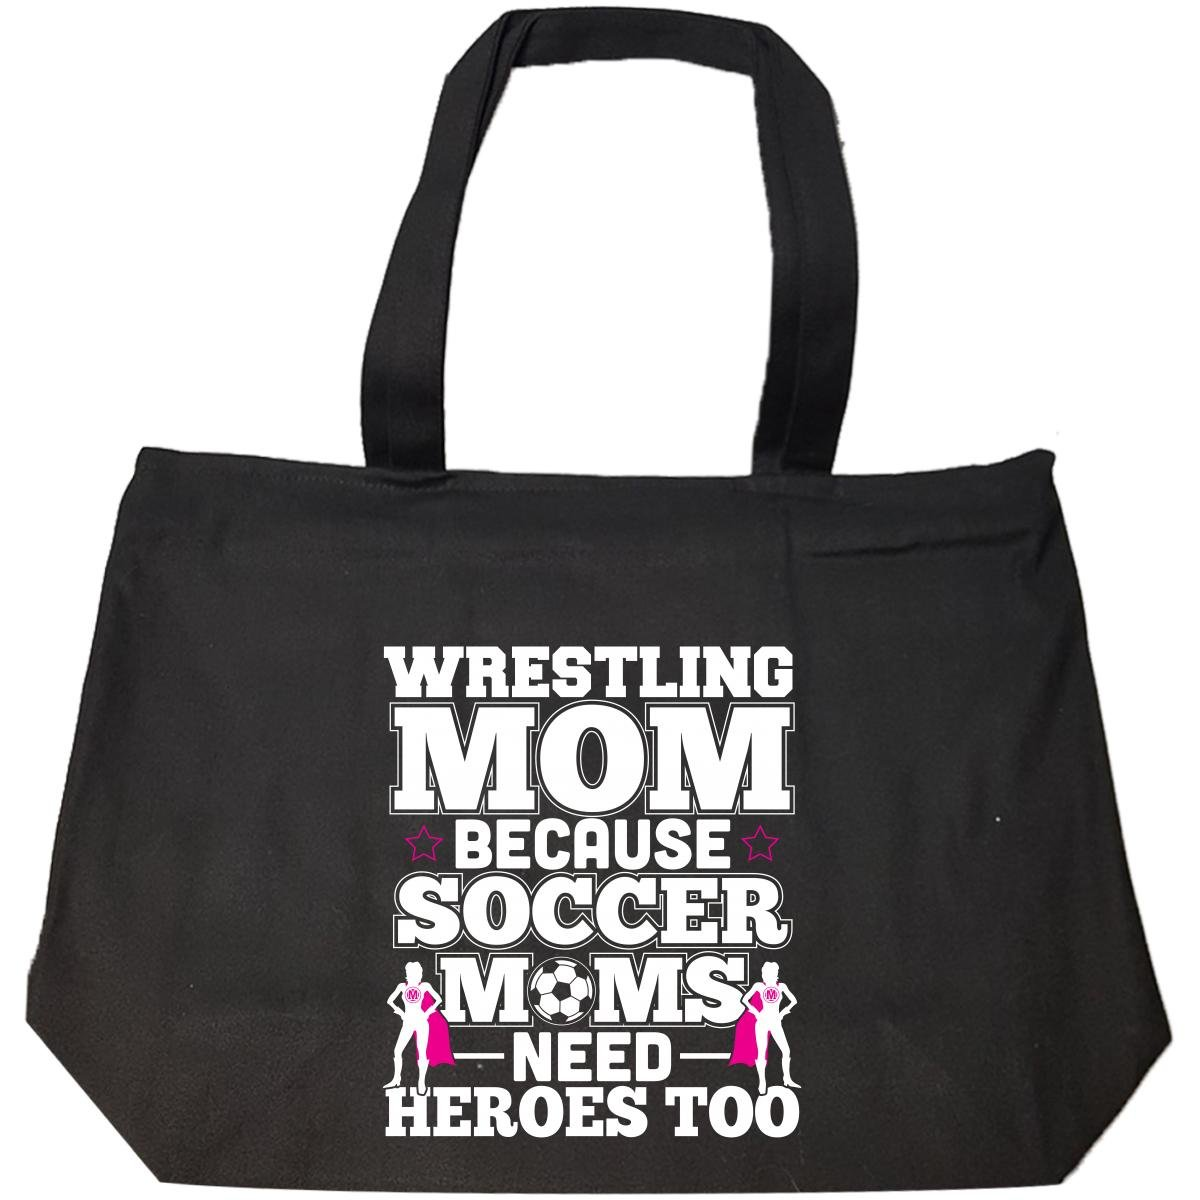 Wrestling Mom Because Soccer Moms Need Heroes Too - Tote Bag With Zip